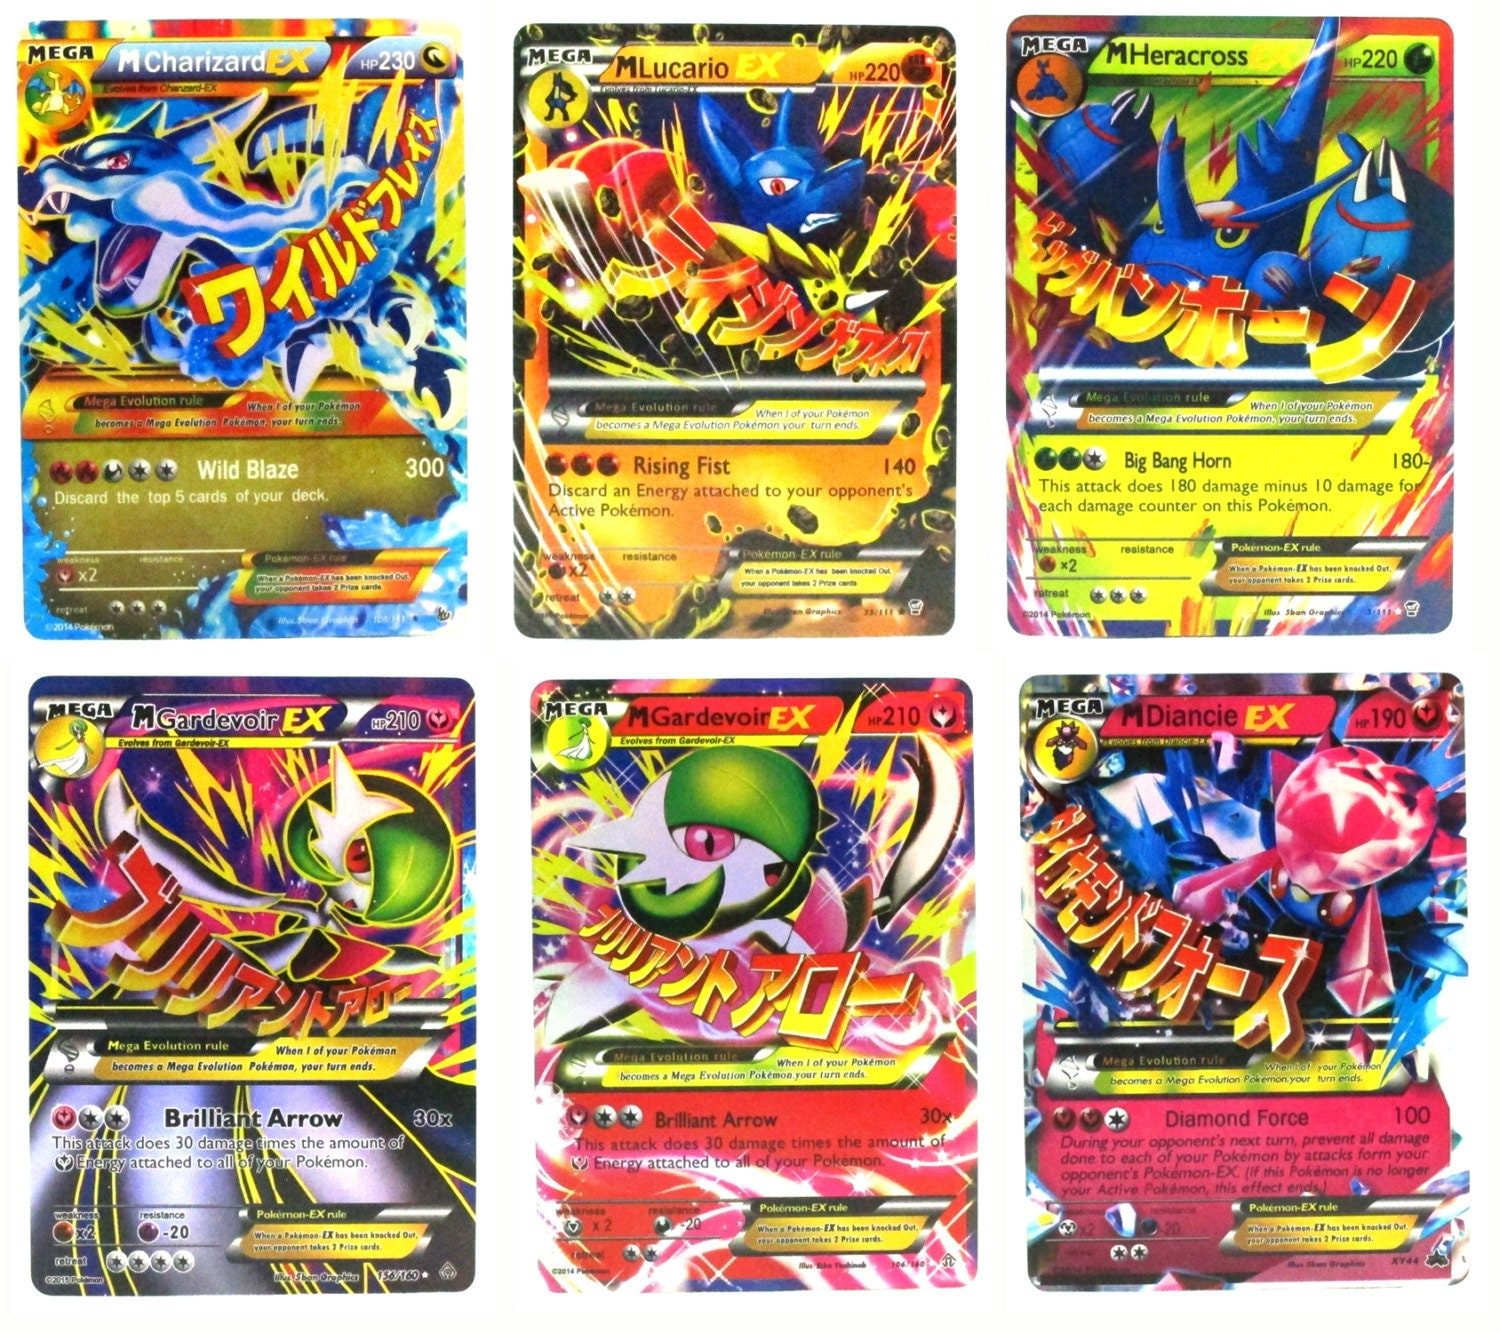 Pokémon Trading Card Game Mega Ex Set Of 6 Cards Charizard